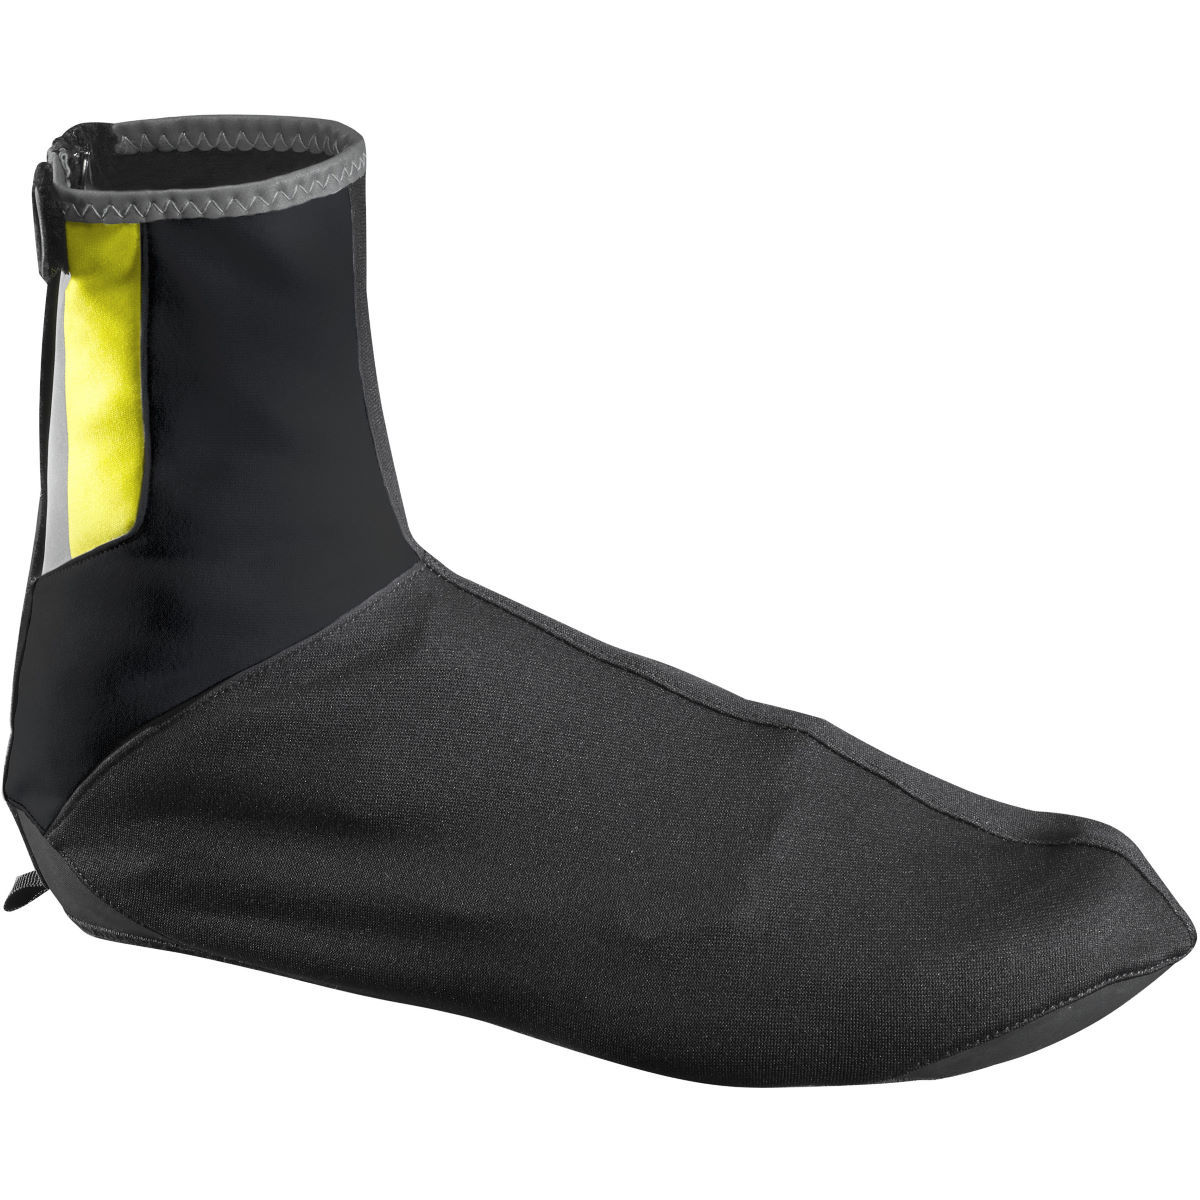 Mavic Vision Overshoes - Small & Meduim to Clear.